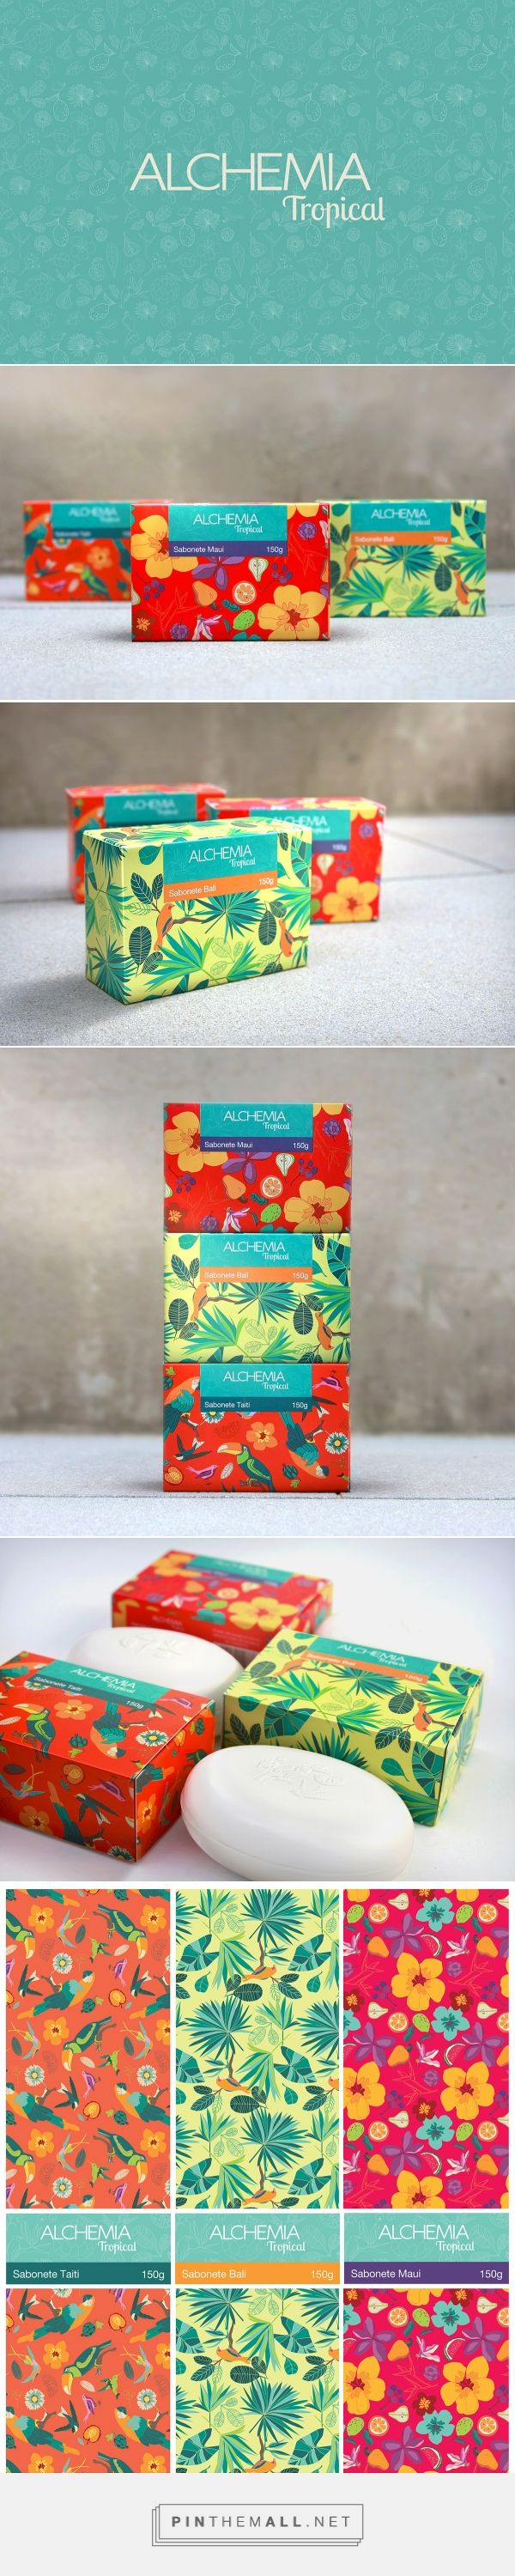 Art direction, illustration and packaging for ALCHEMIA - TROPICAL on Behance curated by Packaging Diva PD.  Very pretty floral packaging for soap.